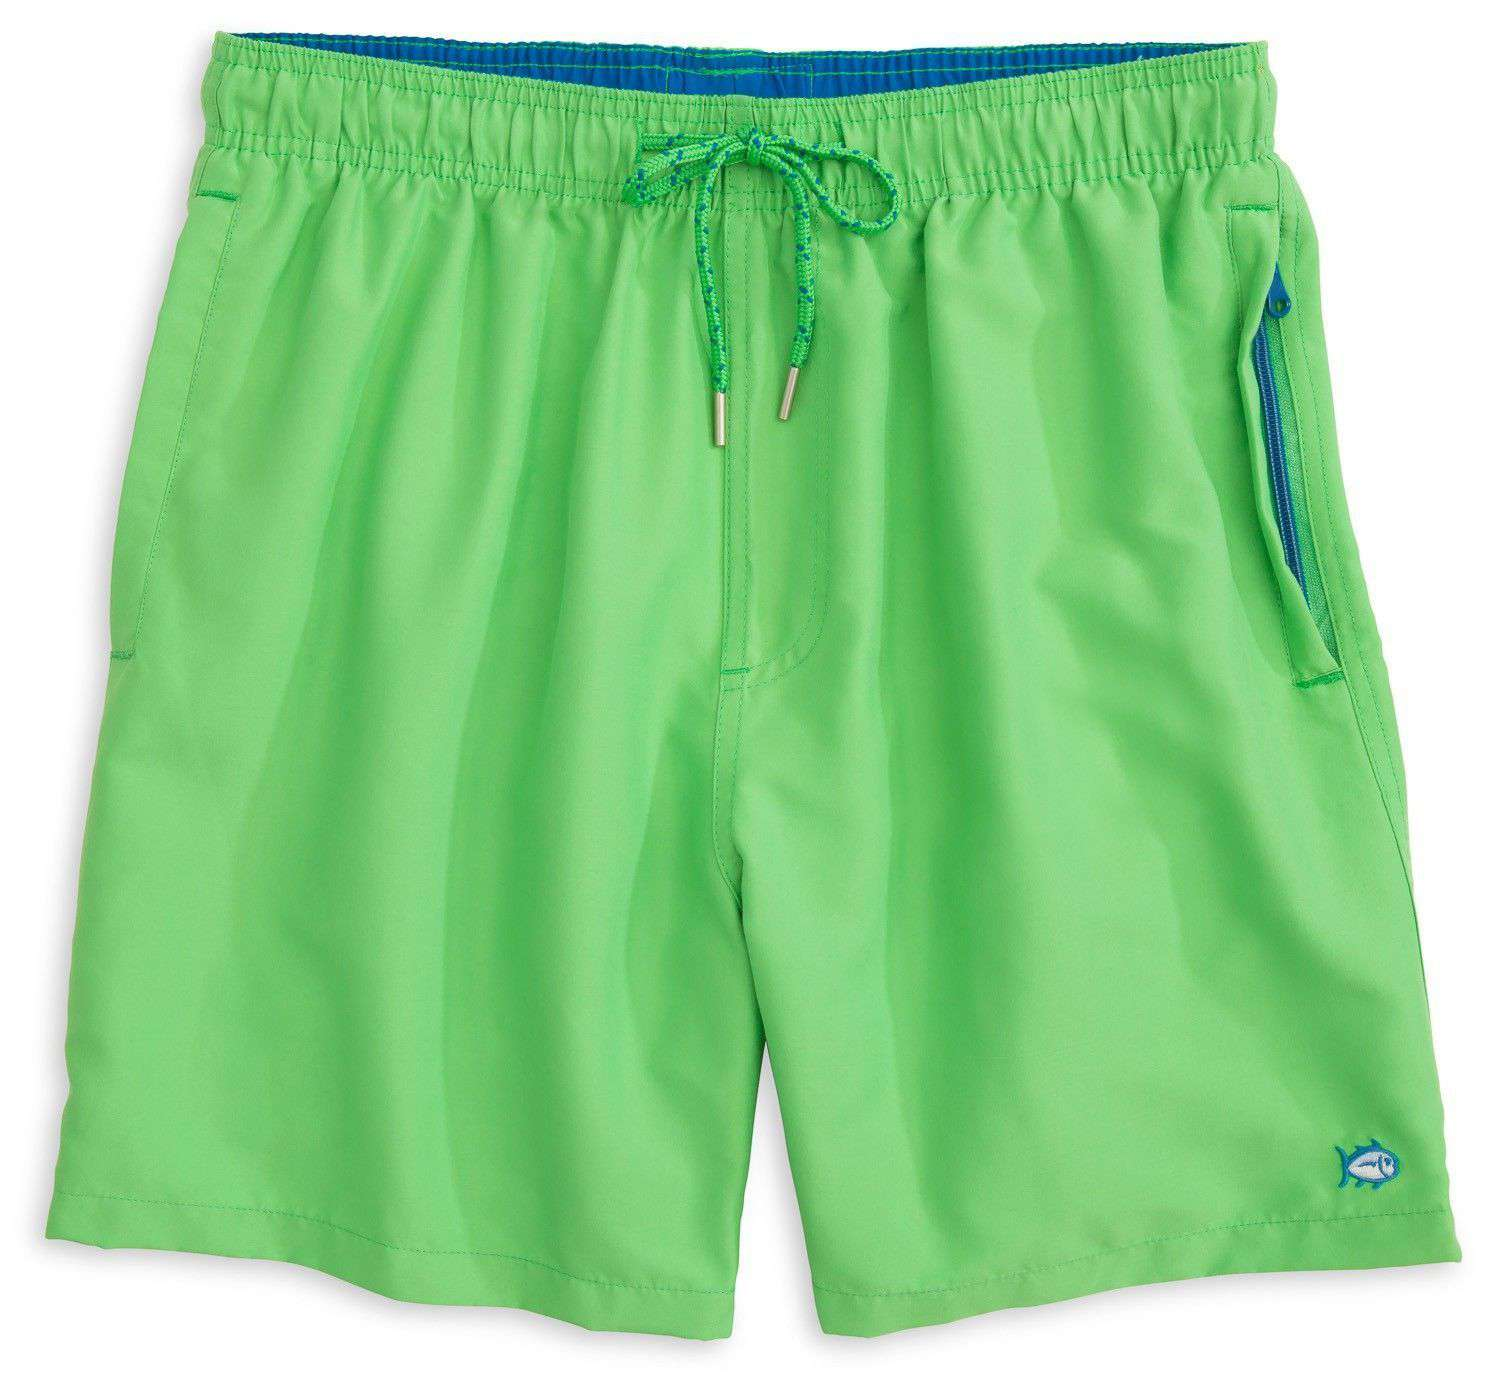 e3f9419d4d Southern Tide Solid Swim Trunks in Island Reef Green – Country Club Prep